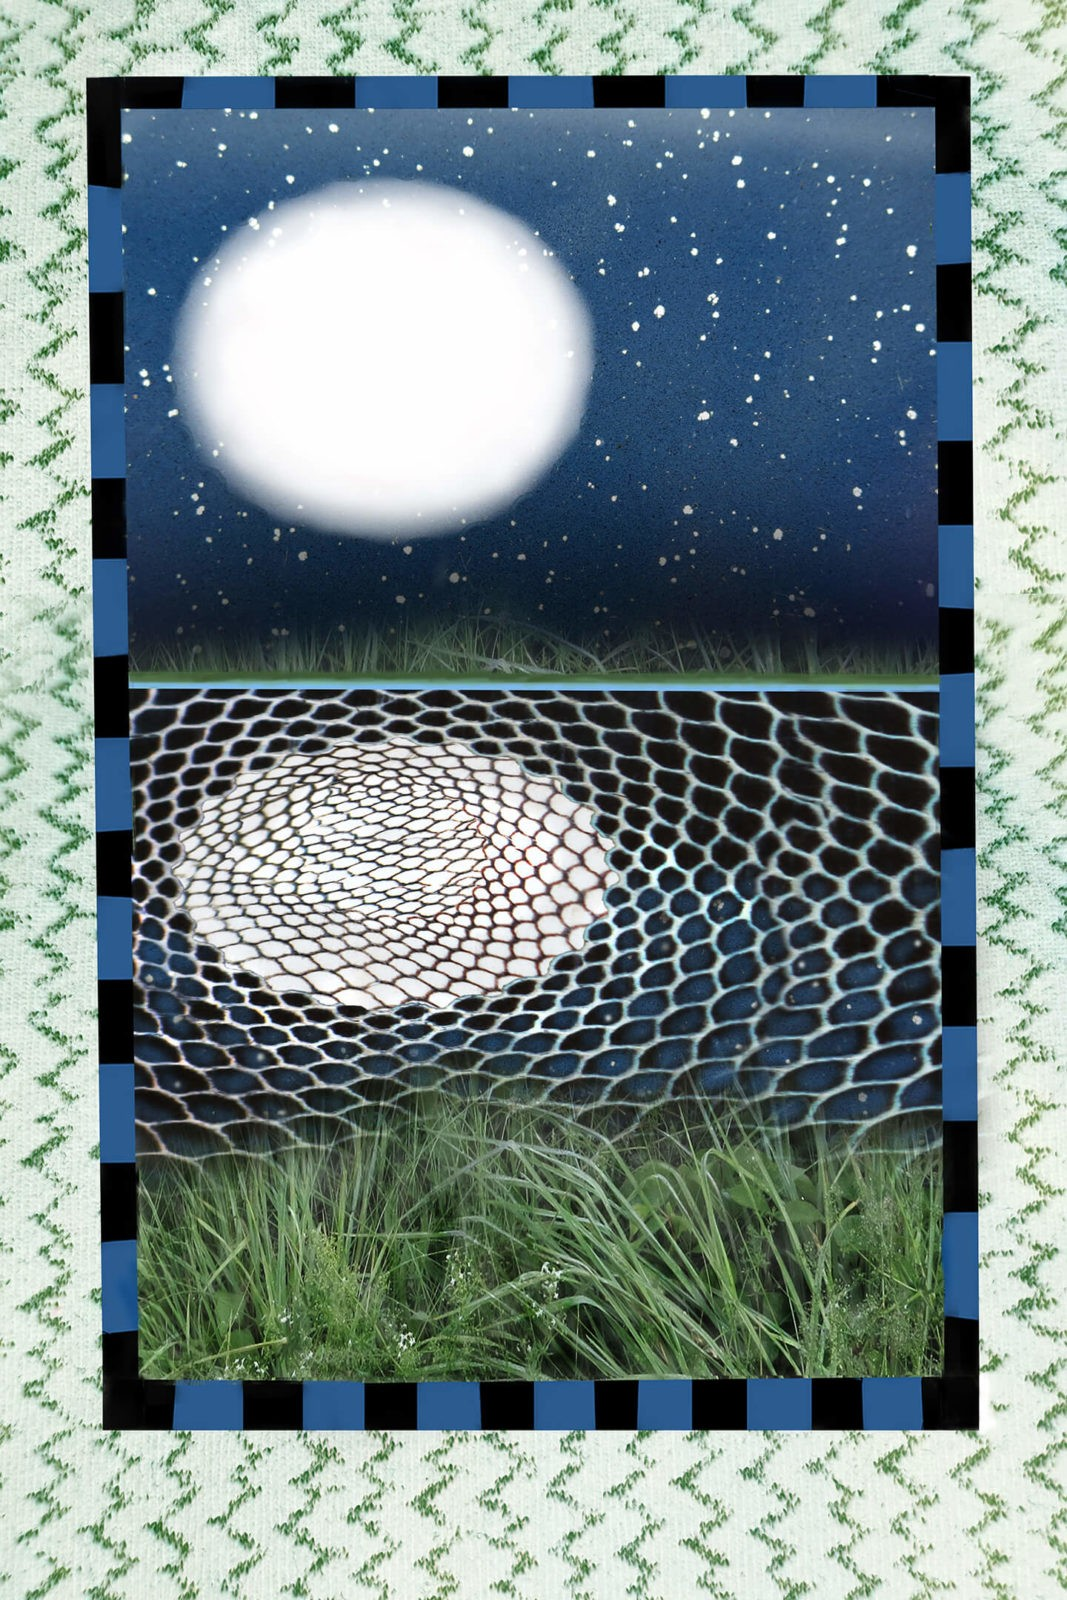 Robin Botie of ithaca, New York, photoshops the full moon relecting in a pond.